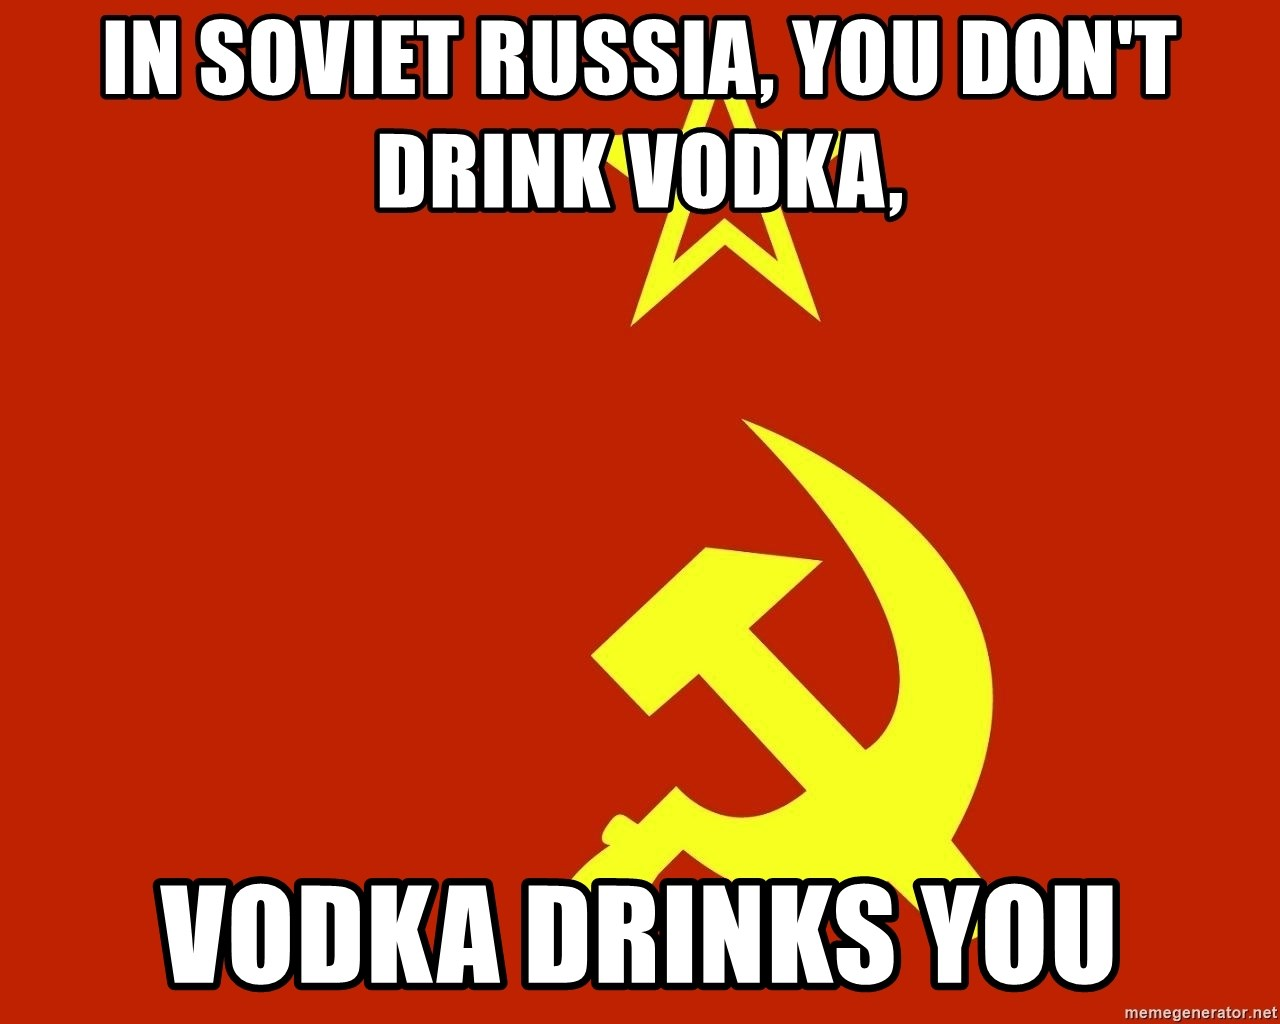 In Soviet Russia - IN SOVIET RUSSIA, YOU DON'T DRINK VODKA, VODKA DRINKS YOU